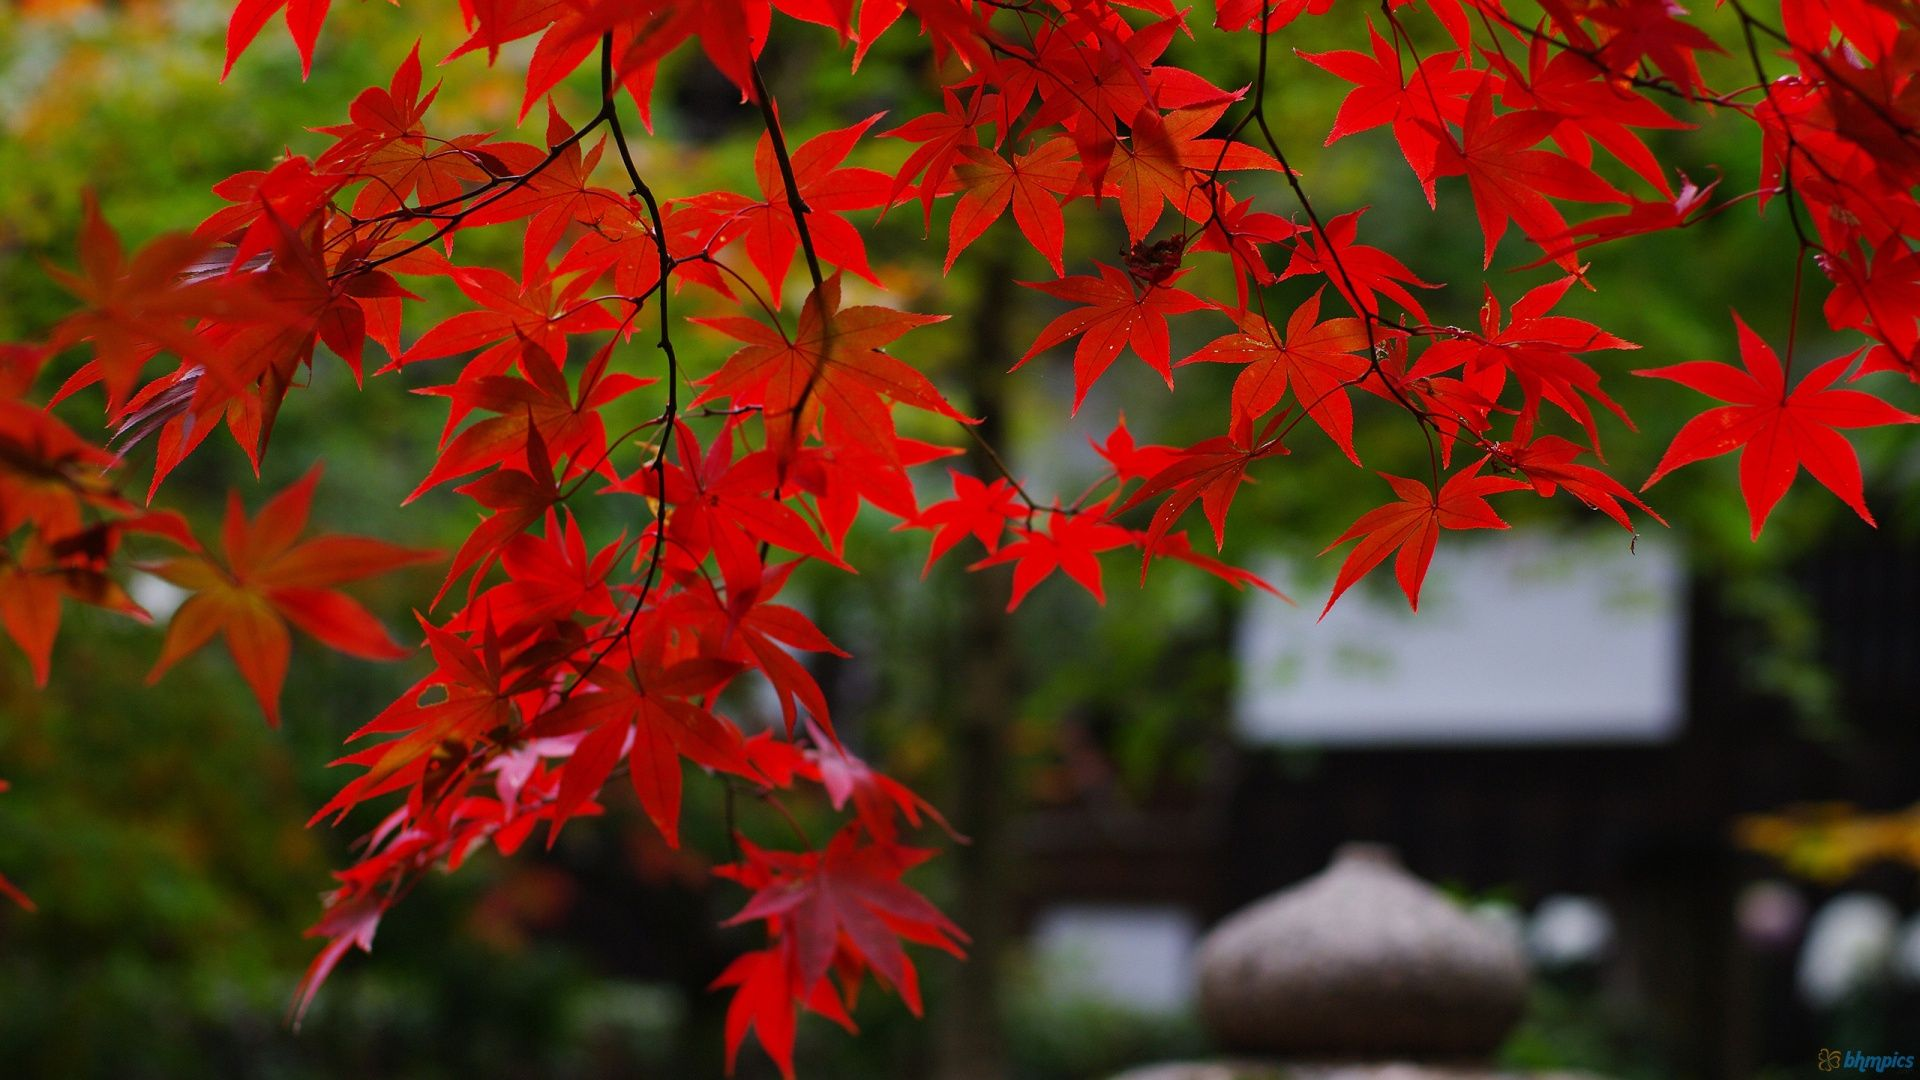 Autumn Leaves Of Red Maple Tree Wallpaper #101518 ...